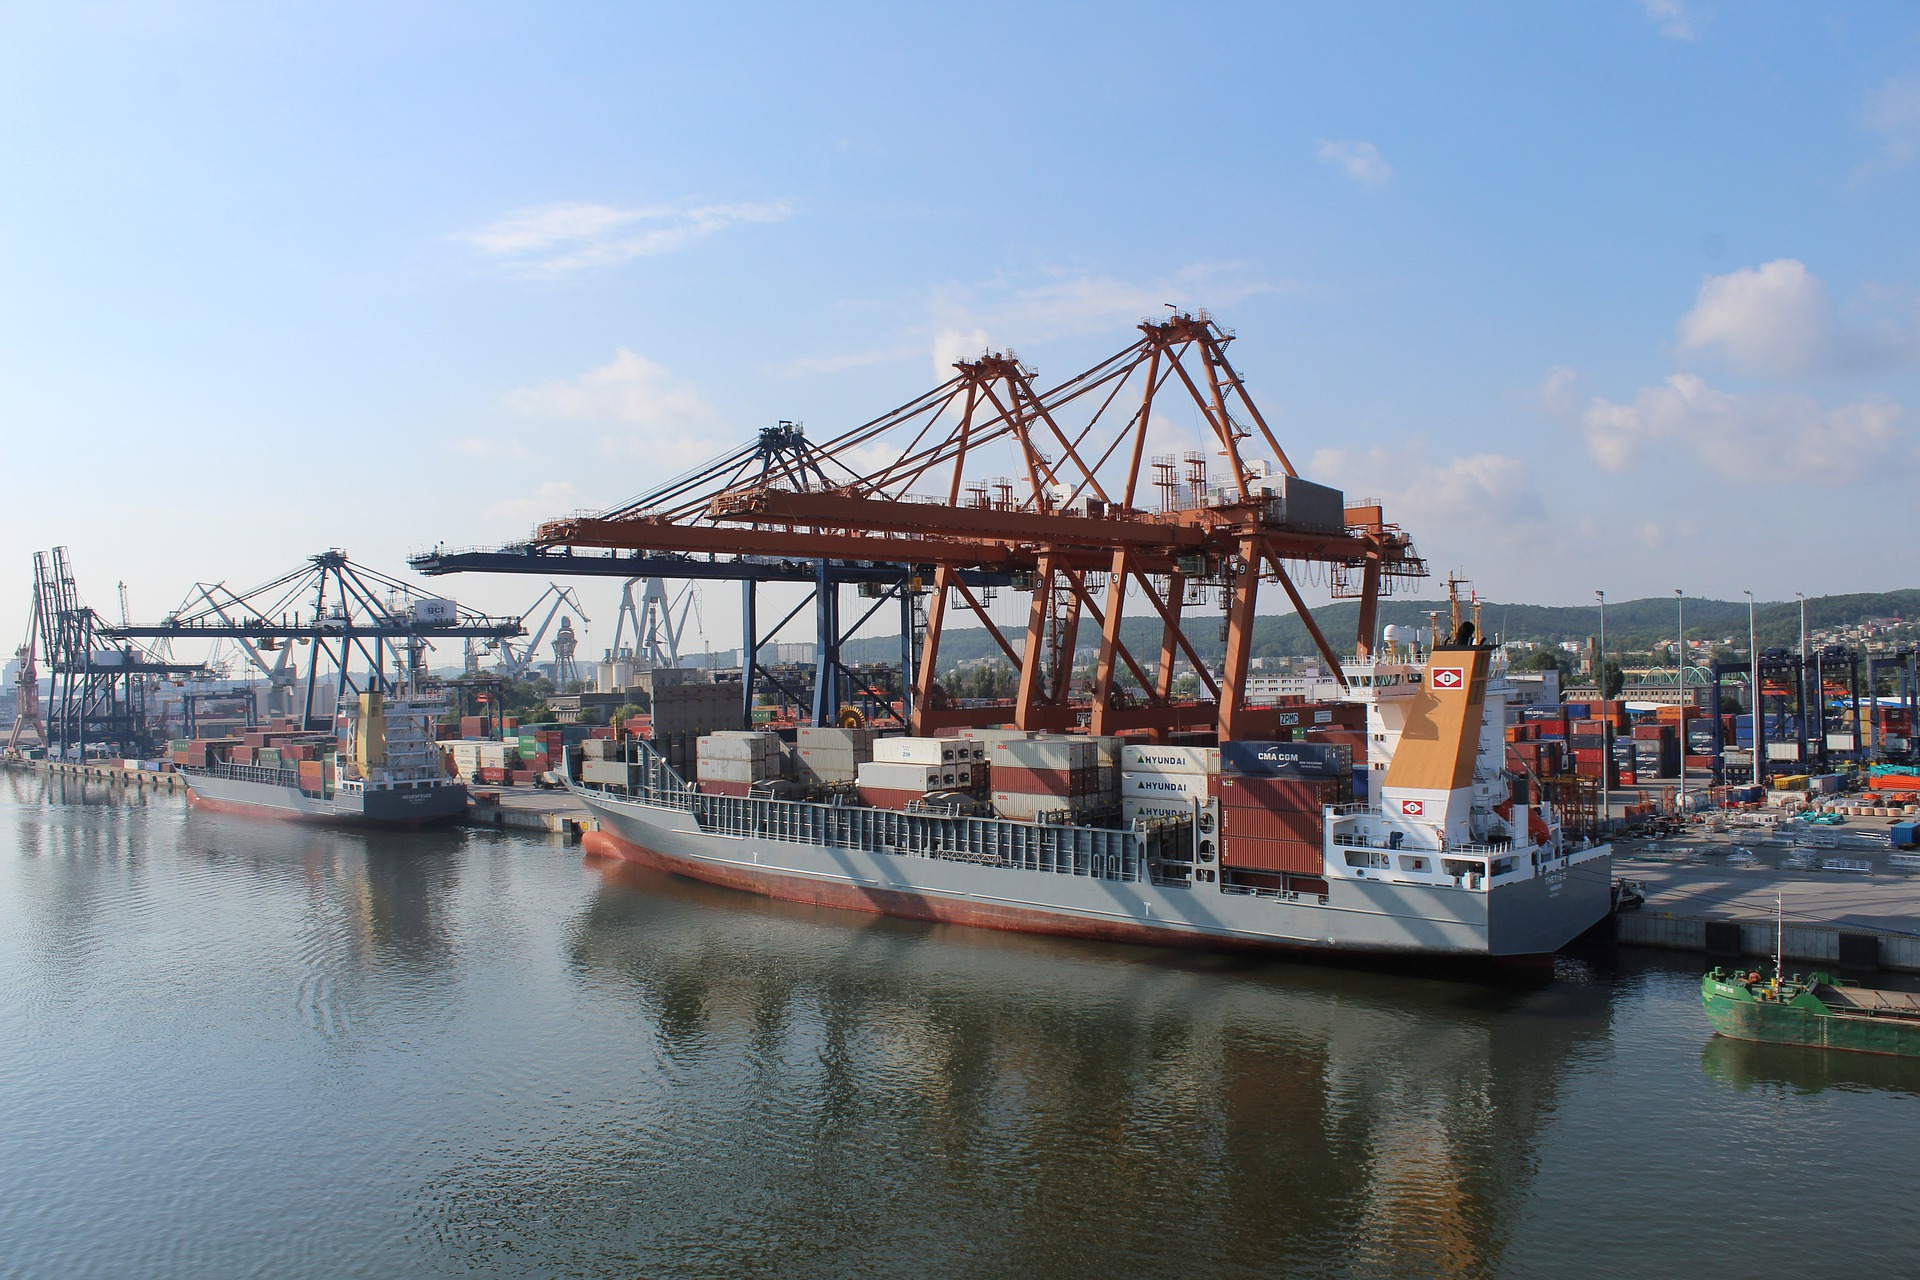 WI Daily News – A letter of intent between Polish and Ukrainian seaports